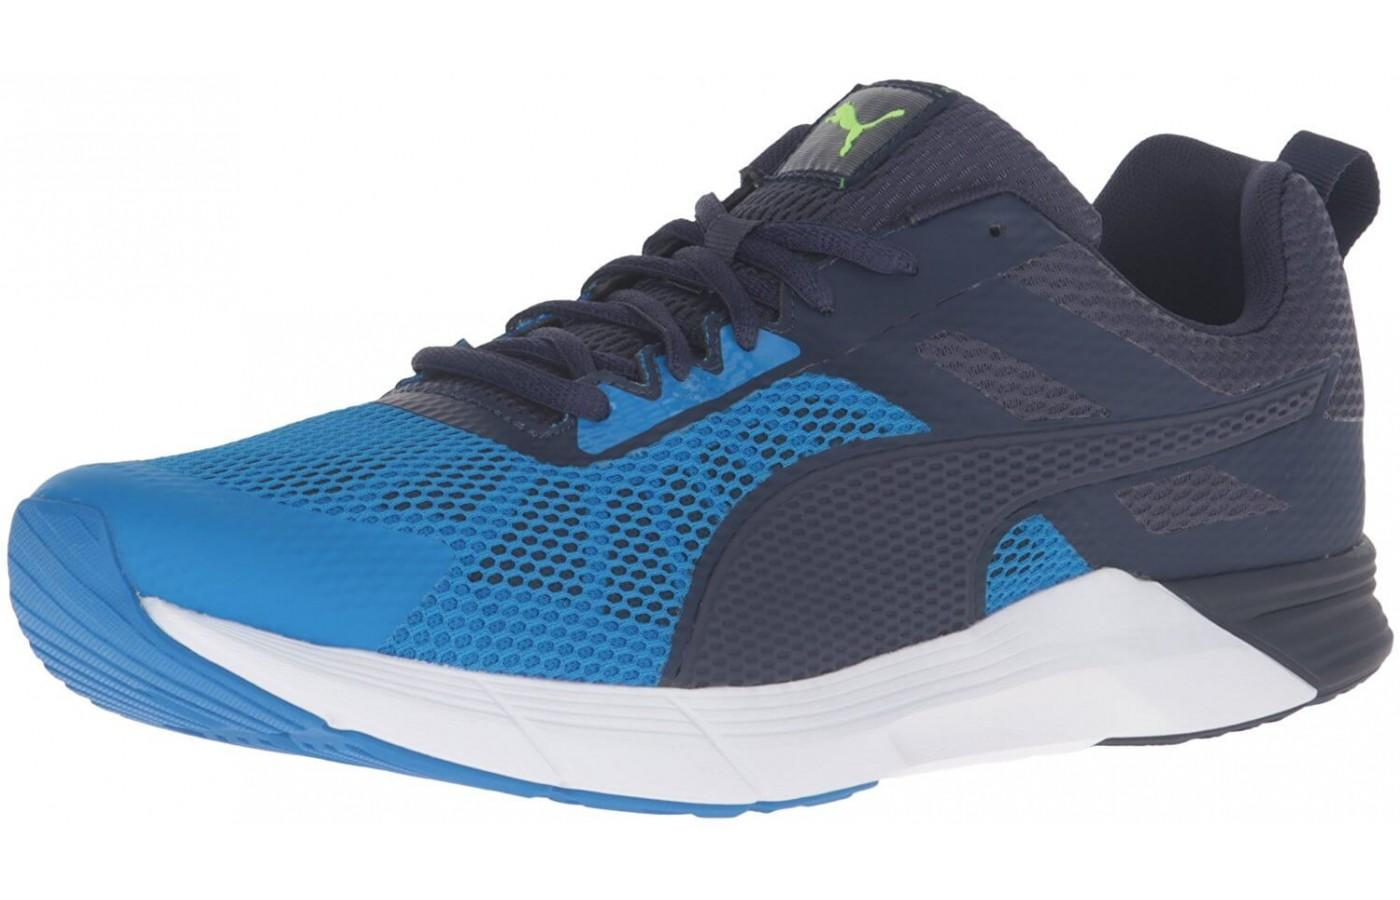 194b954492a Puma Propel Reviewed & Rated 2019